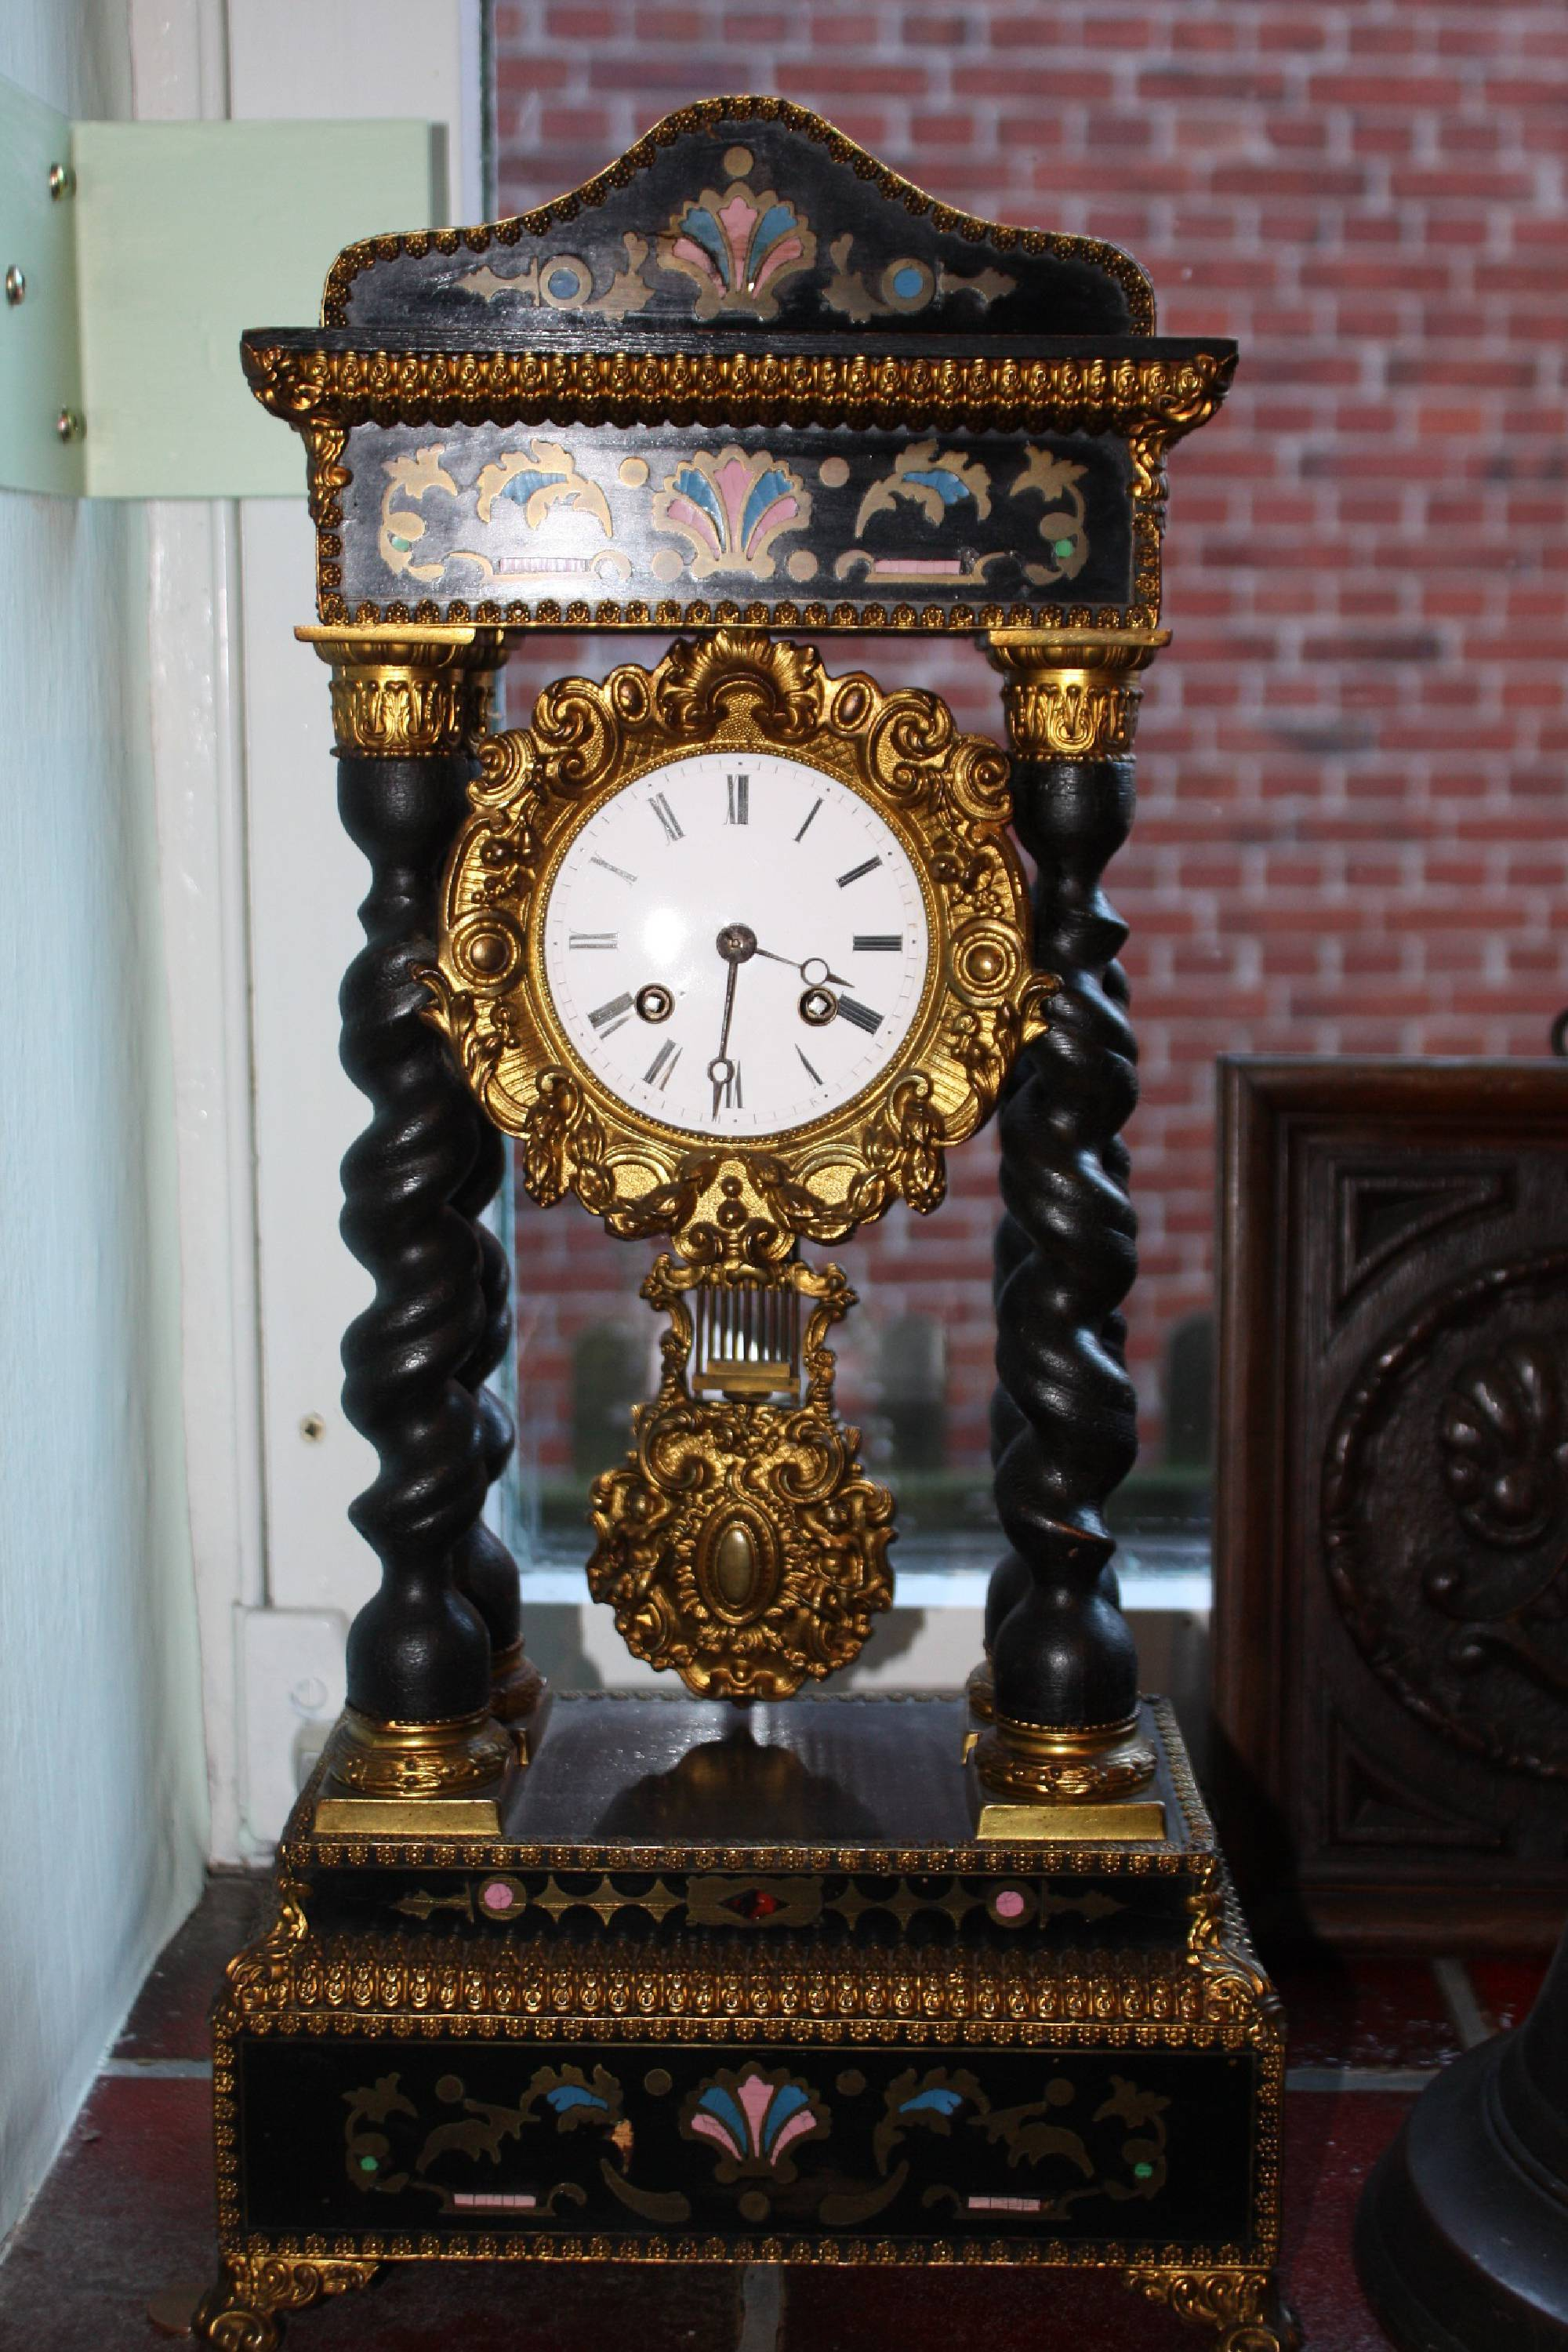 A French ornate antique 19th century mantel clock with four ebonized tortuous pillars and inlays